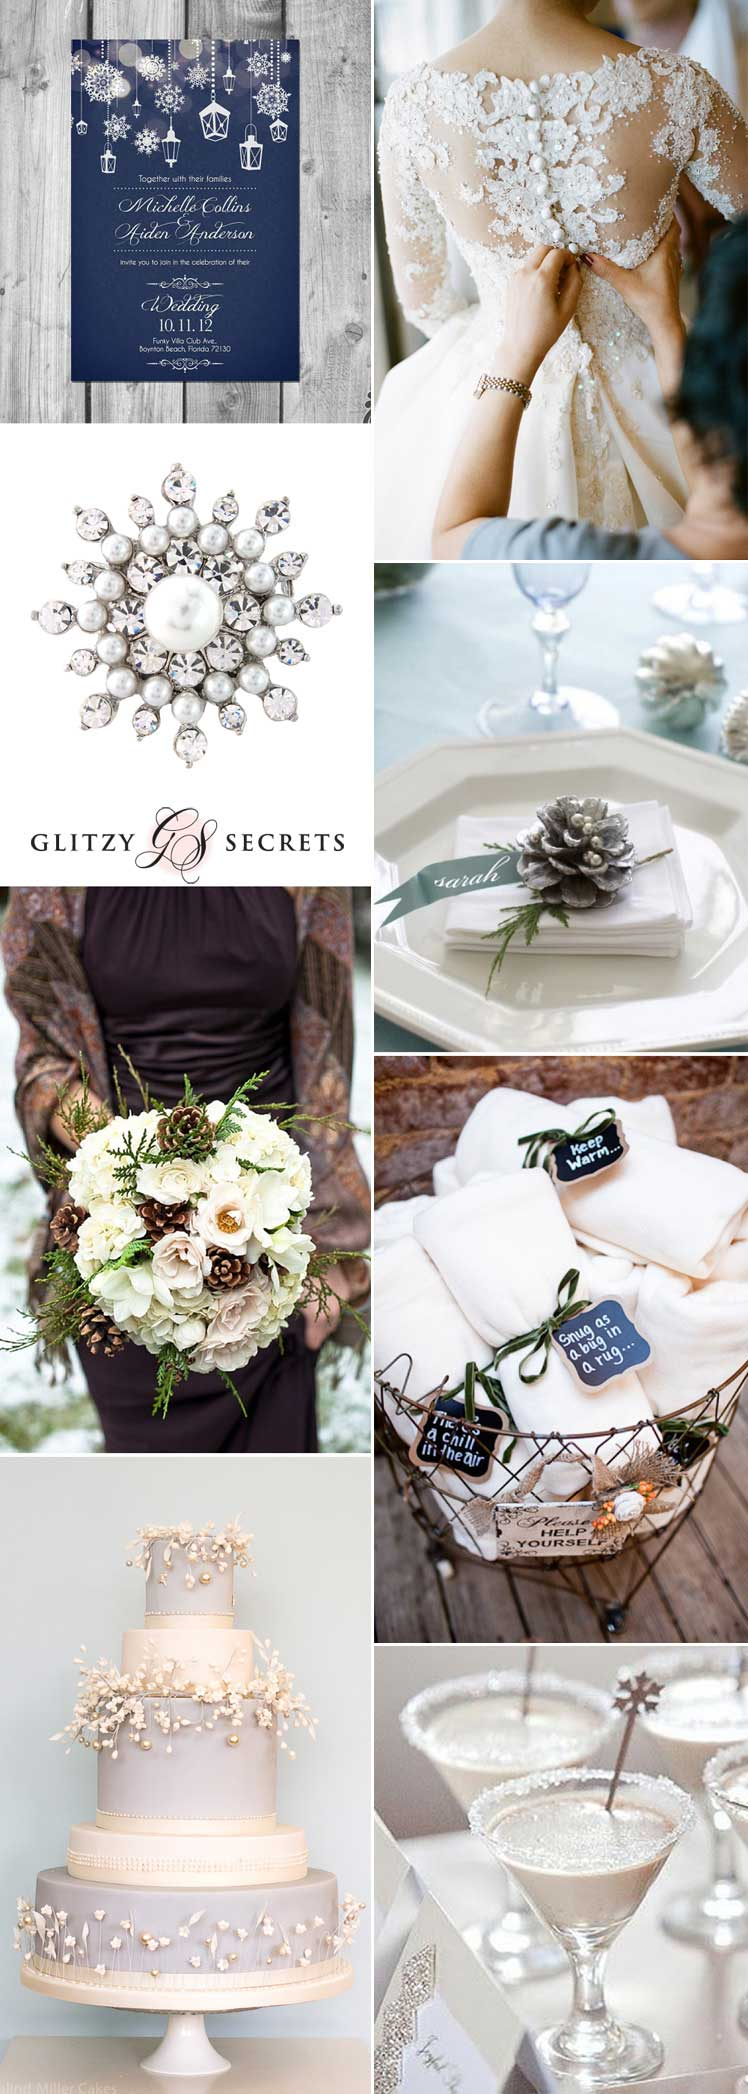 Magical winter wonderland wedding ideas